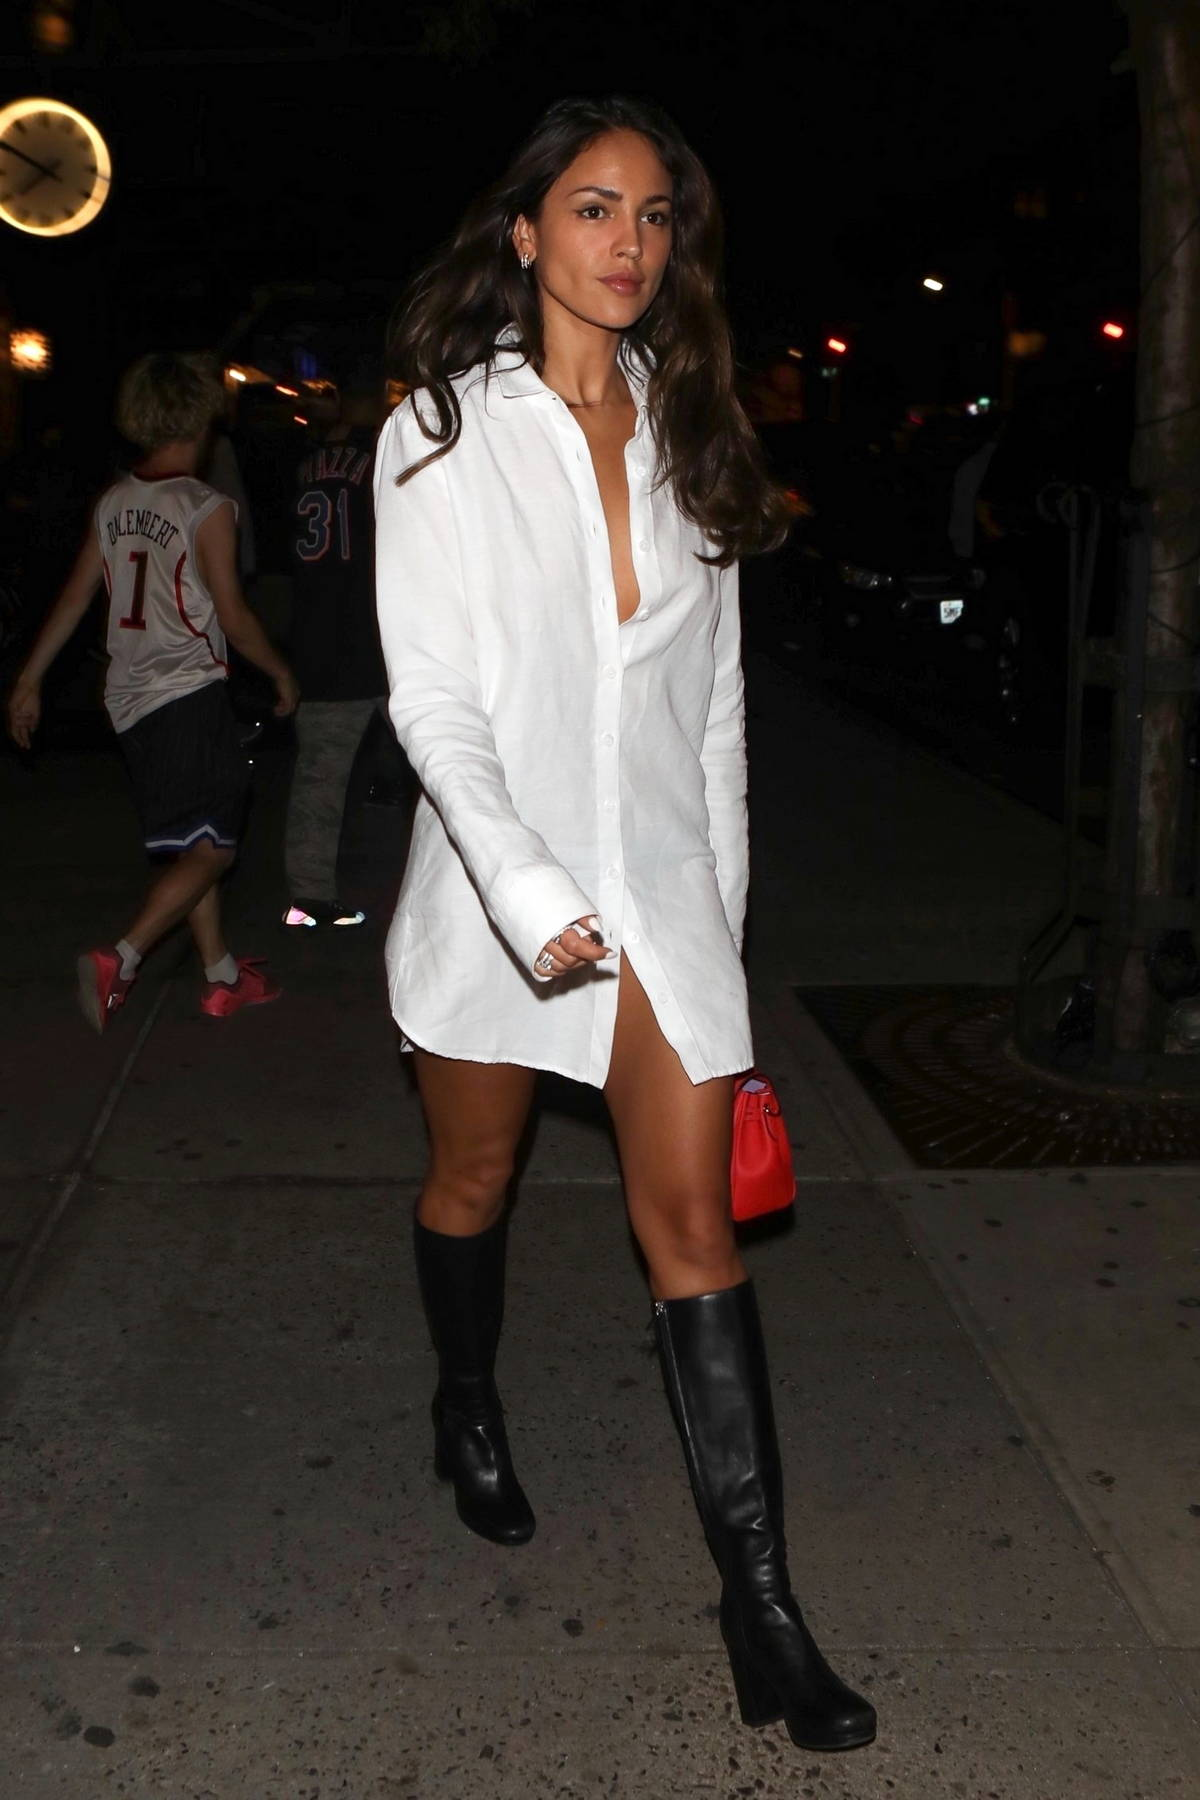 Eiza Gonzalez looks amazing in a white shirt dress while out for dinner with boyfriend Paul Rabil in New York City